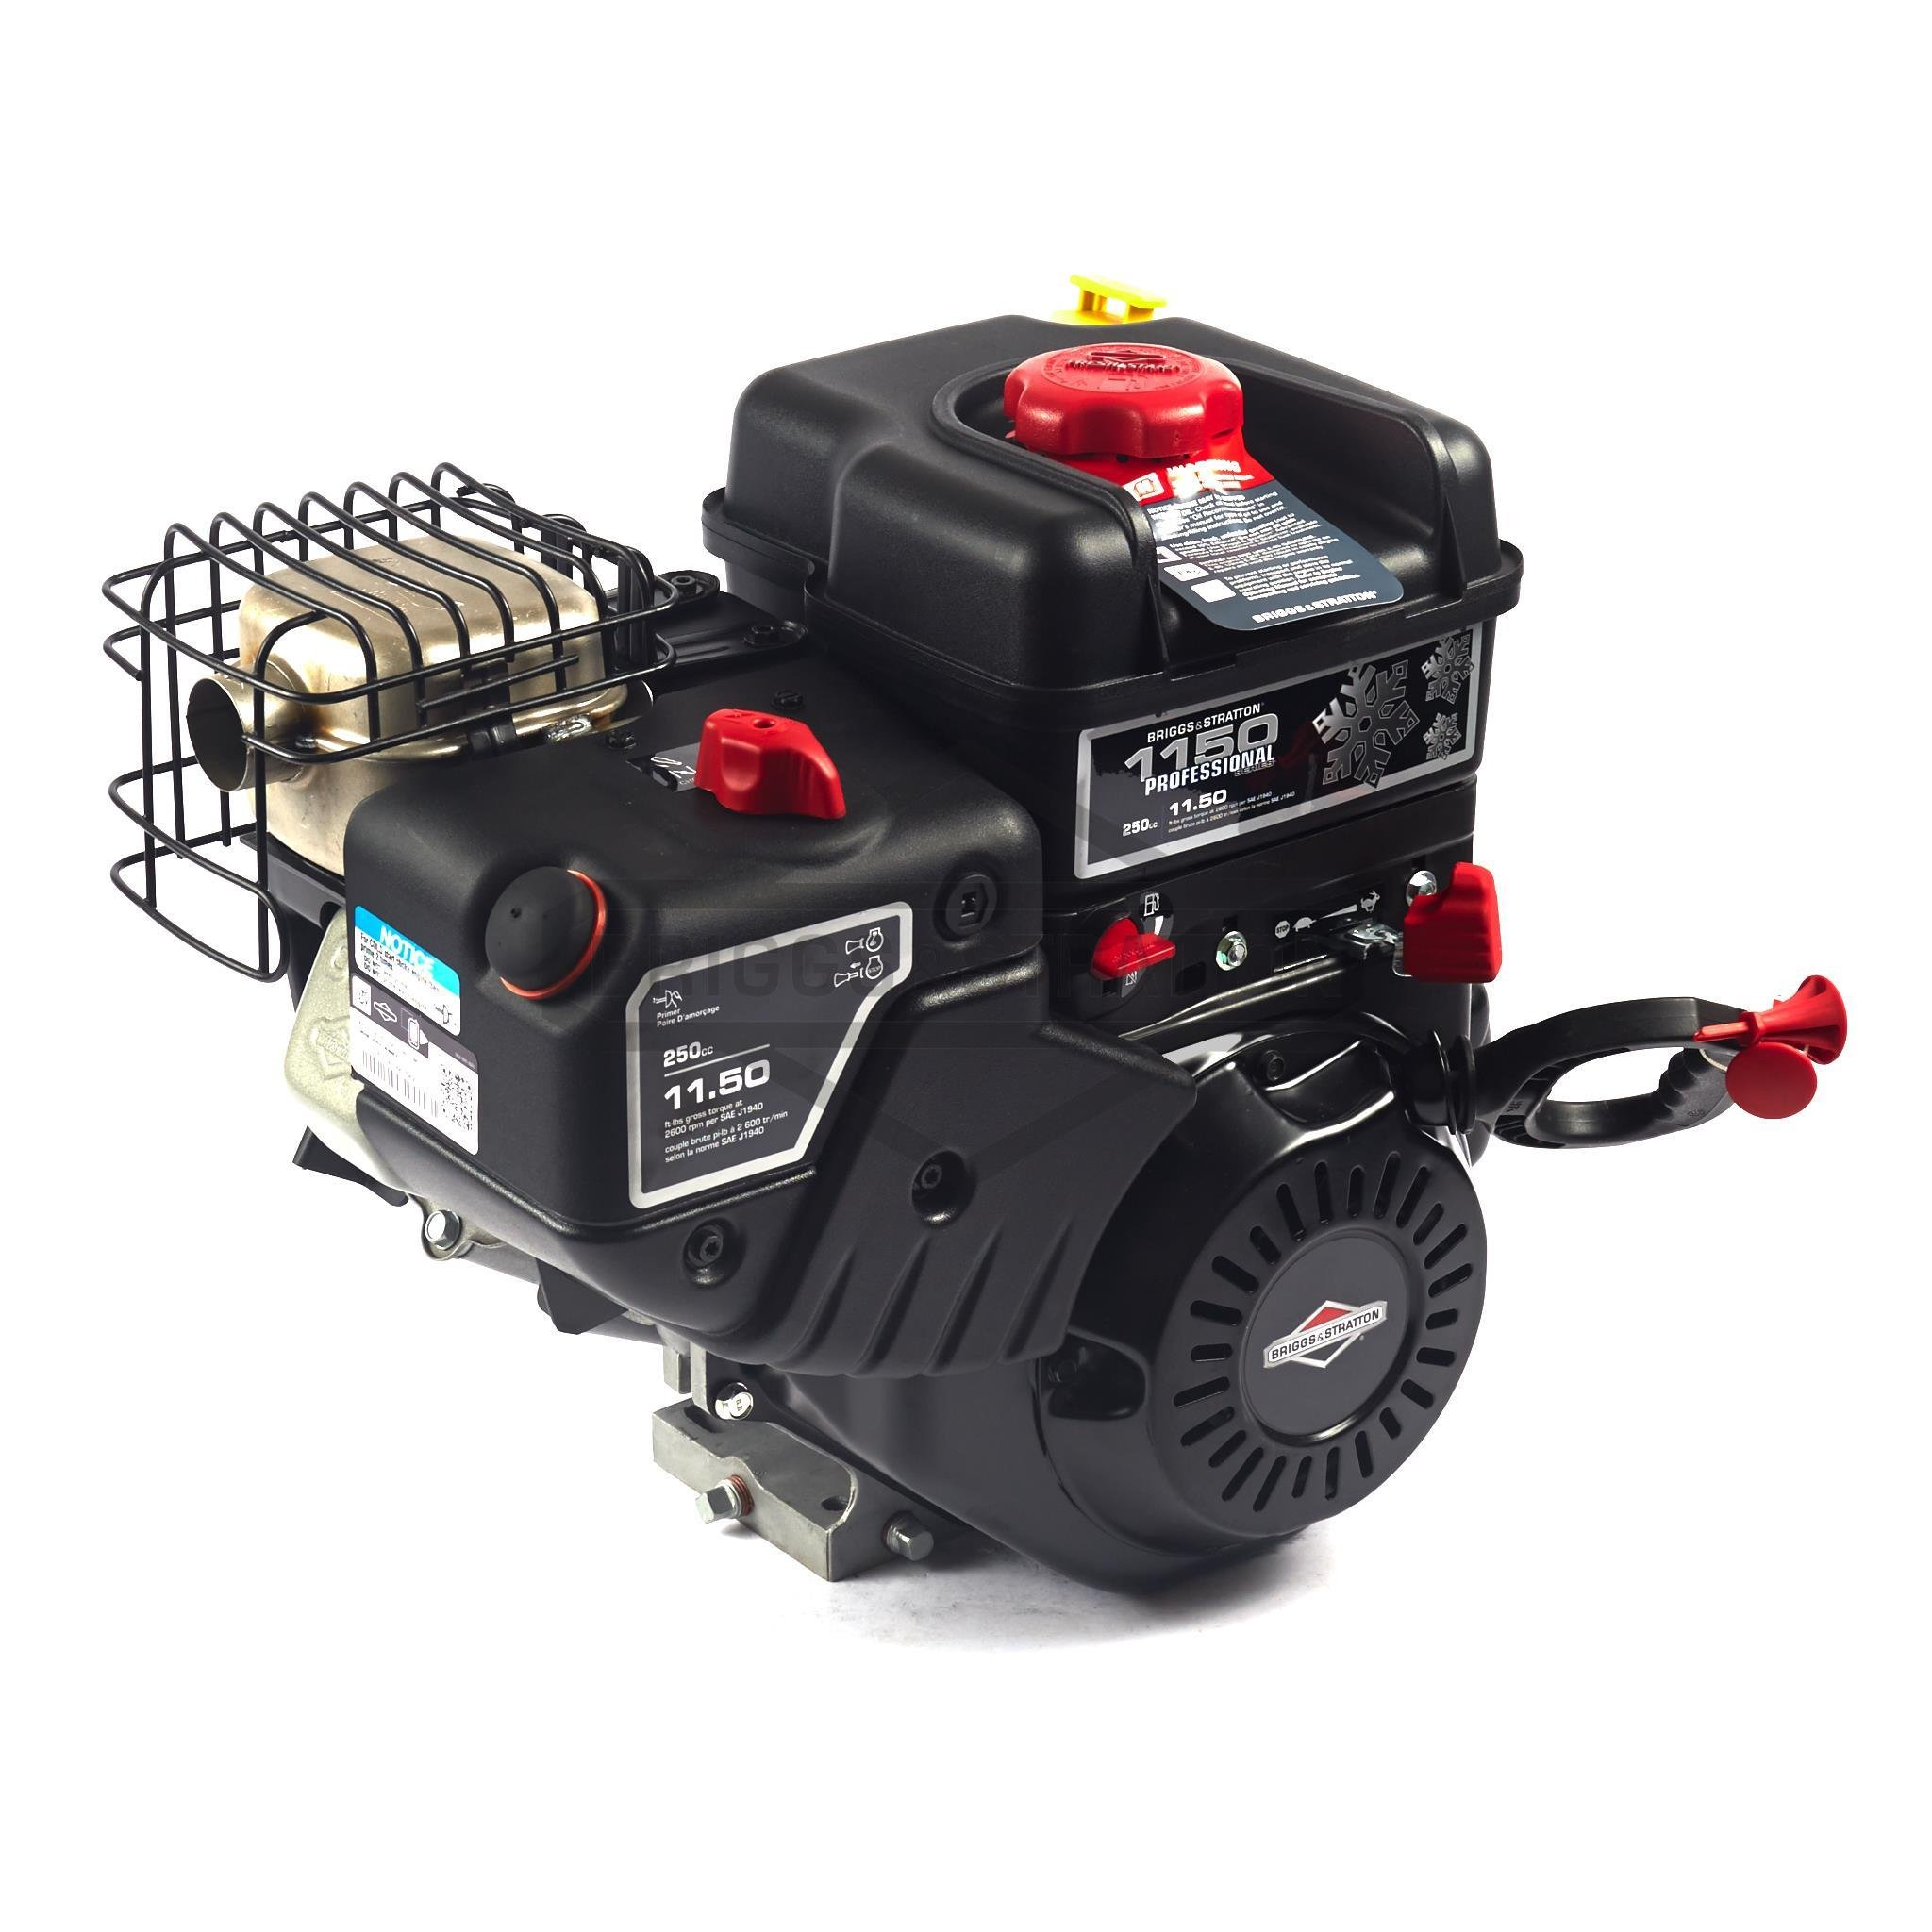 Briggs and Stratton 15C134-3023-F8 Snow Series Max 250cc 11.50 Gross Torque Engine with 1-Inch Diameter by 2-3/4-Inch Crankshaft